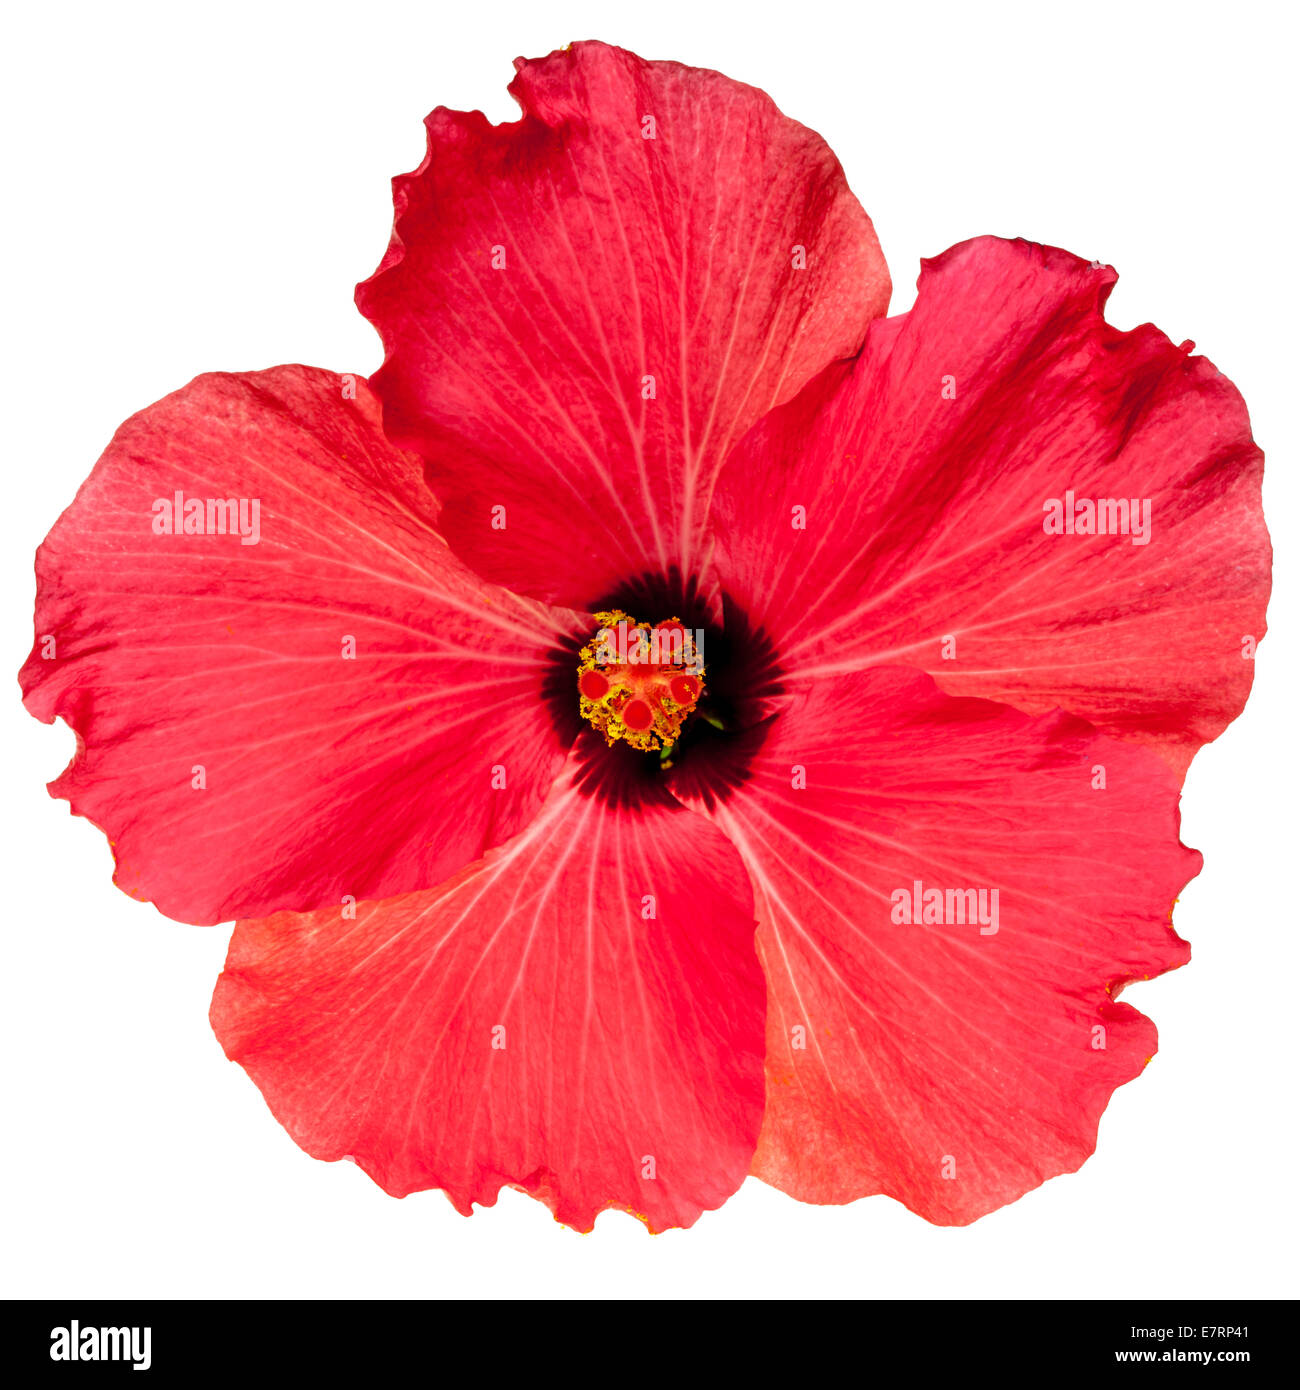 Hot pink tropical hibiscus flower stock photos hot pink tropical hot pink tropical hibiscus flower isolated on a pure white background stock image izmirmasajfo